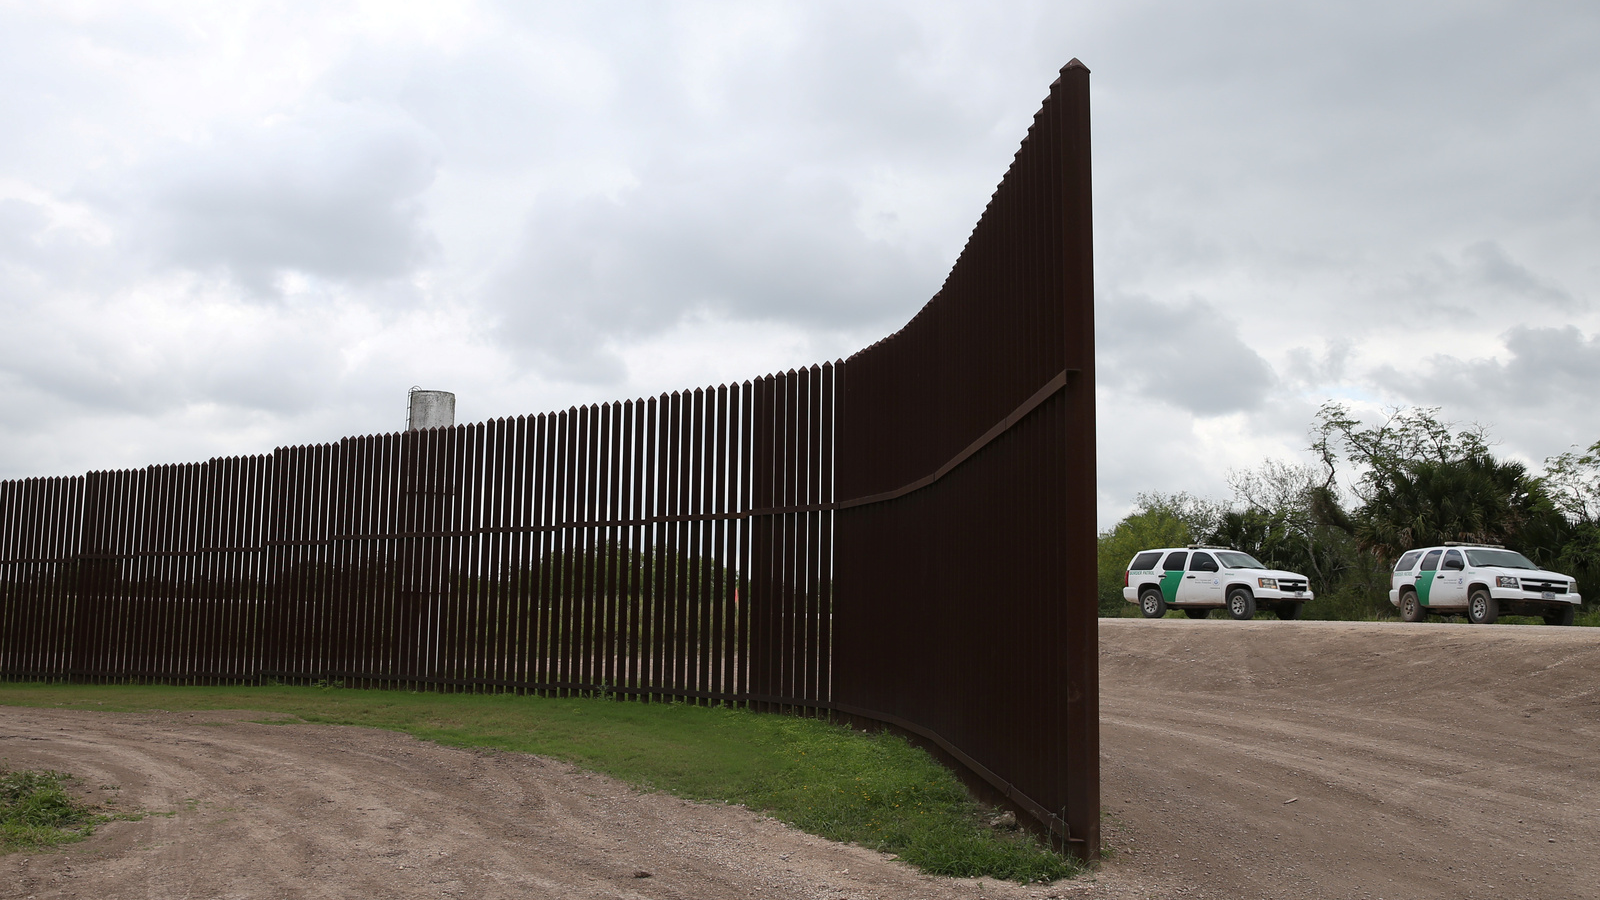 a gap in the border wall between the US and Mexico